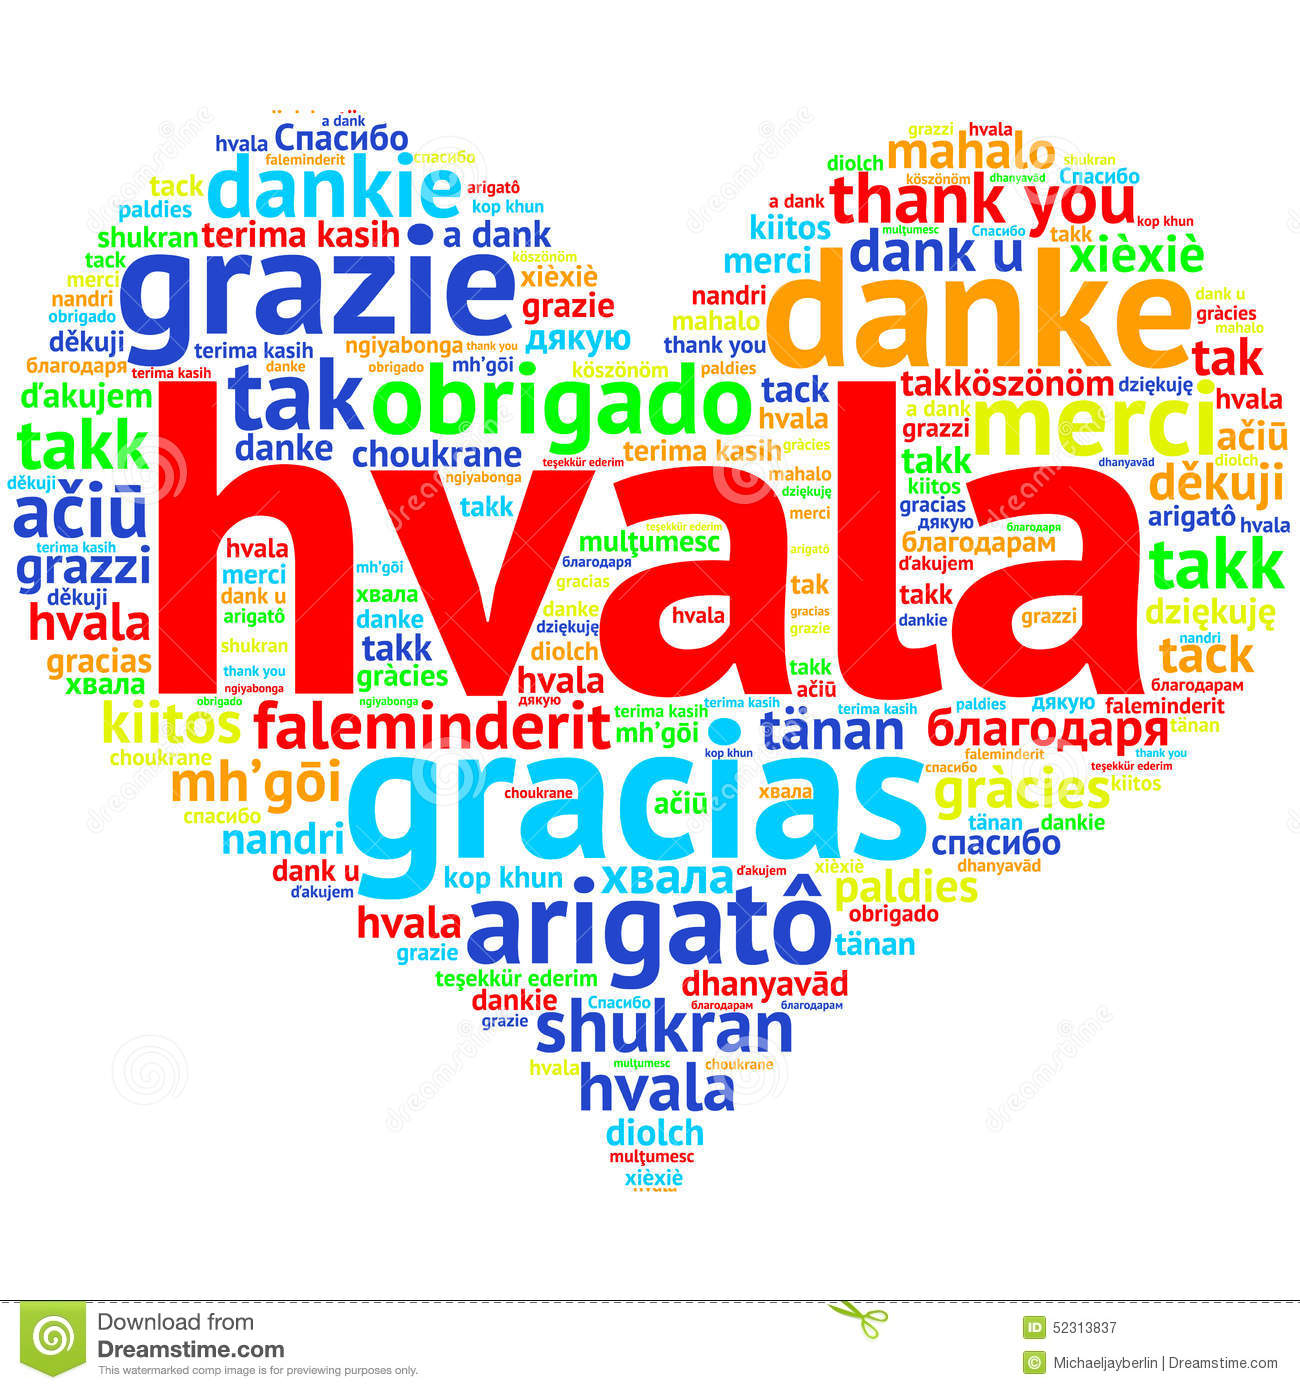 how to say thank you in serbian